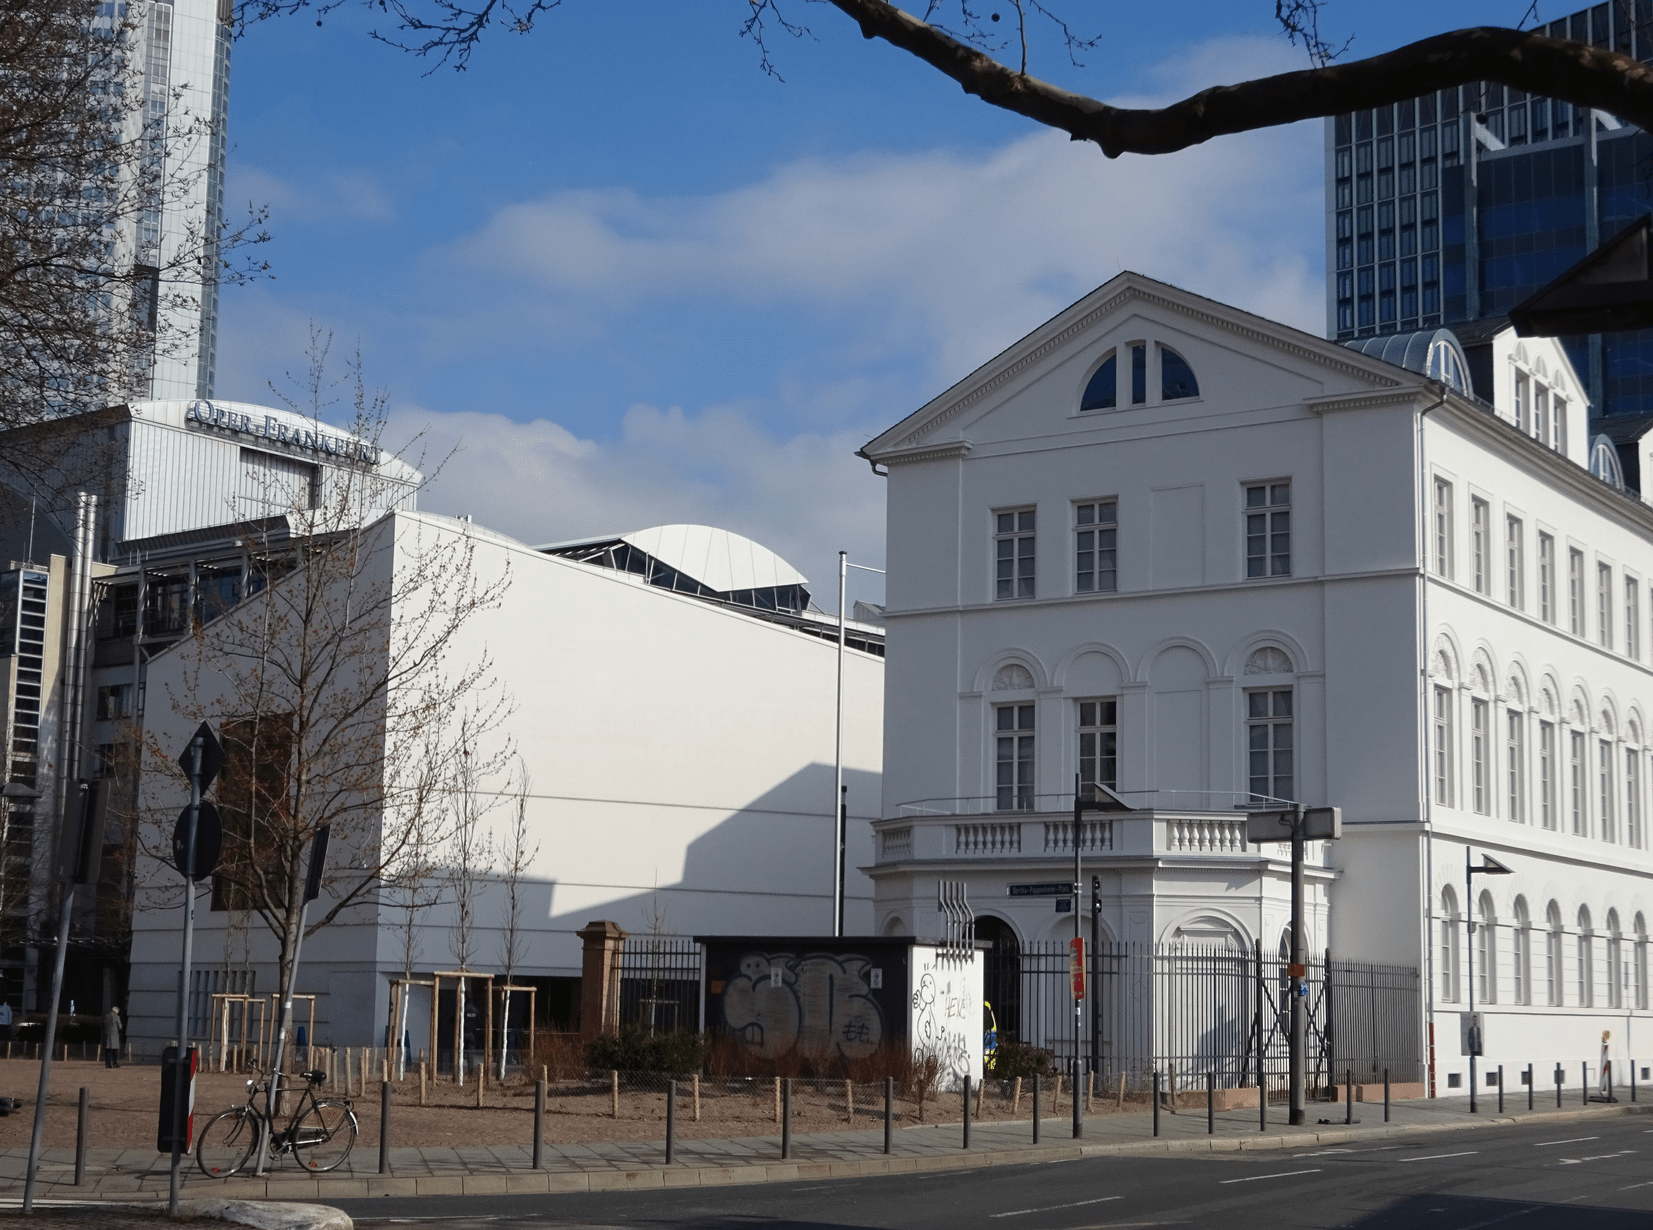 The historic Rothschild Palais and the new extension